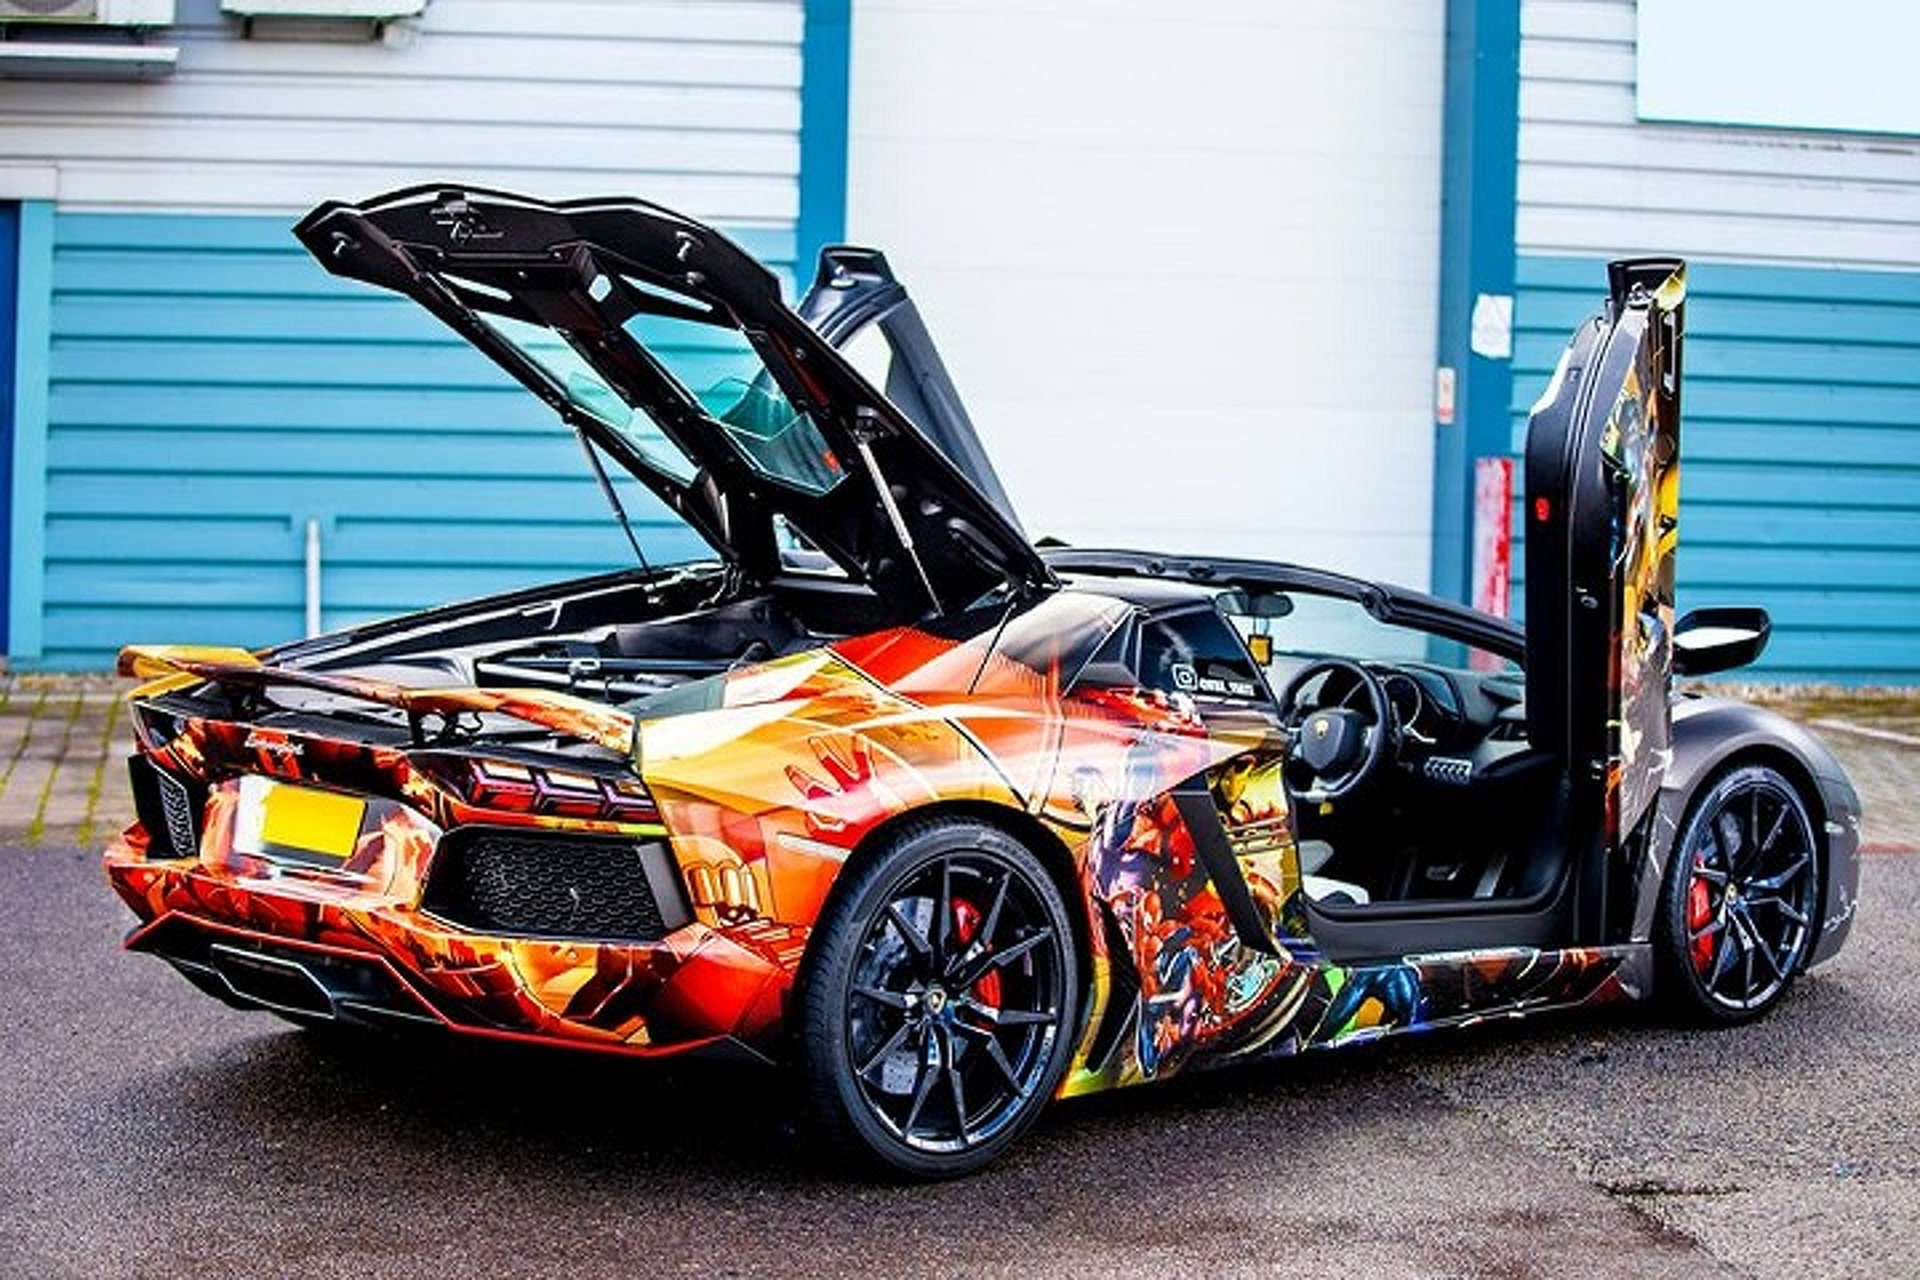 Vw Of America >> Lamborghini Aventador Gets a Marvel-ous Superhero Wrap